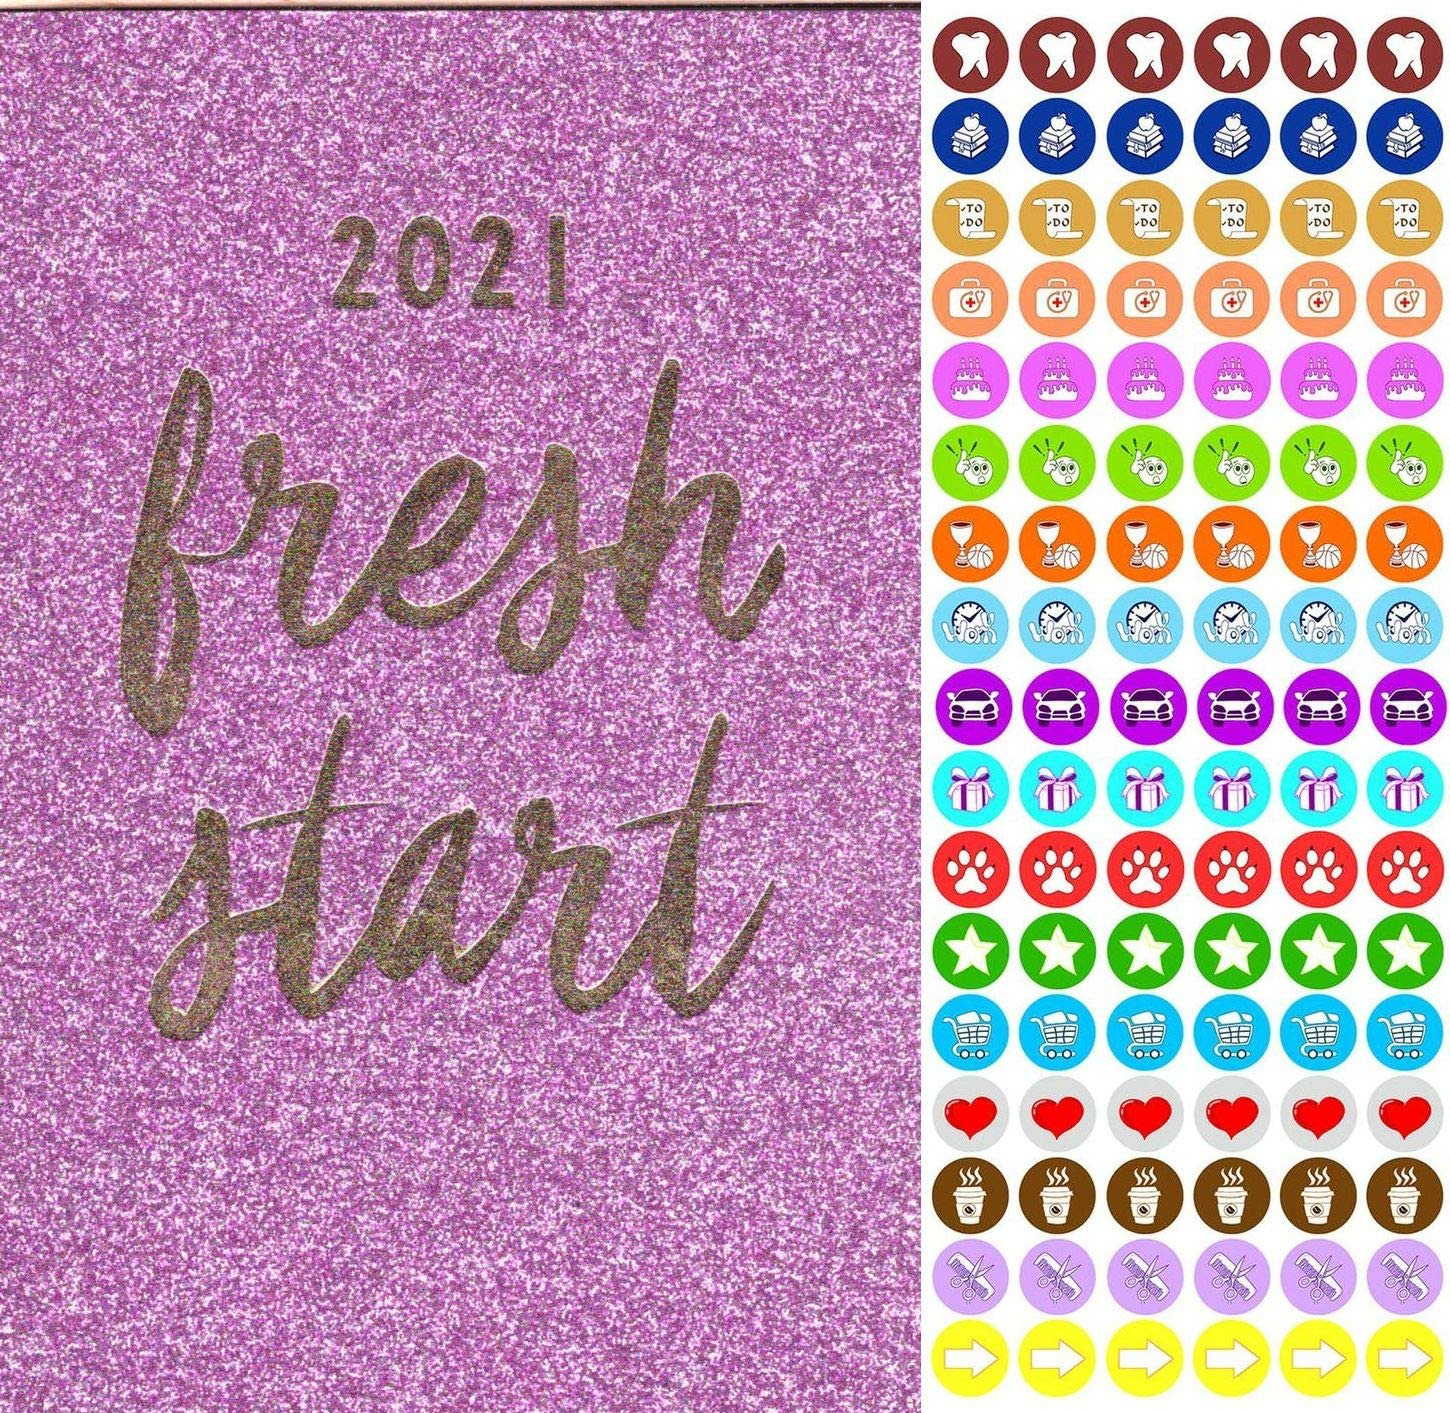 2021 Weekly Pocket Appointment Planner/Calendar - with 100 Reminder Stickers (Edition #4)